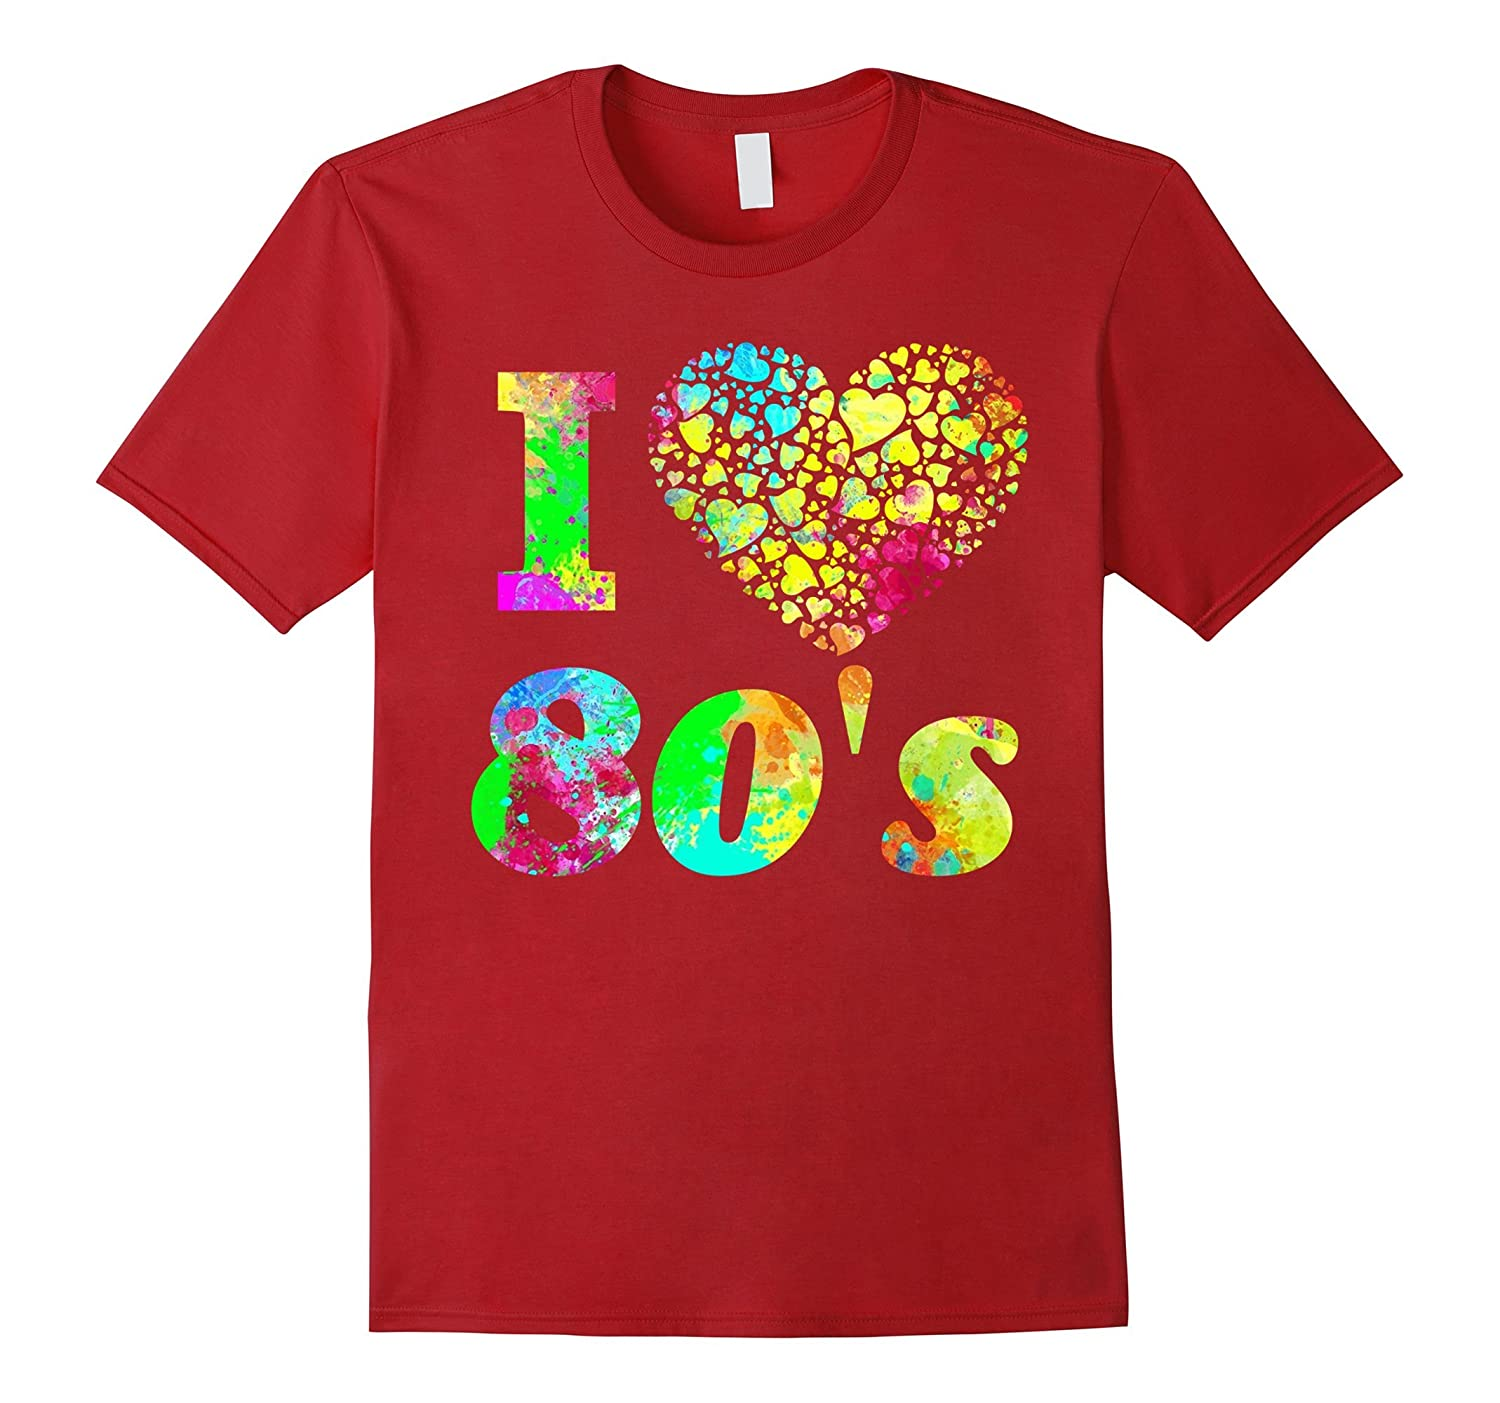 1980's Shirt – I Love The 80s Shirt – Colorful Party Tee